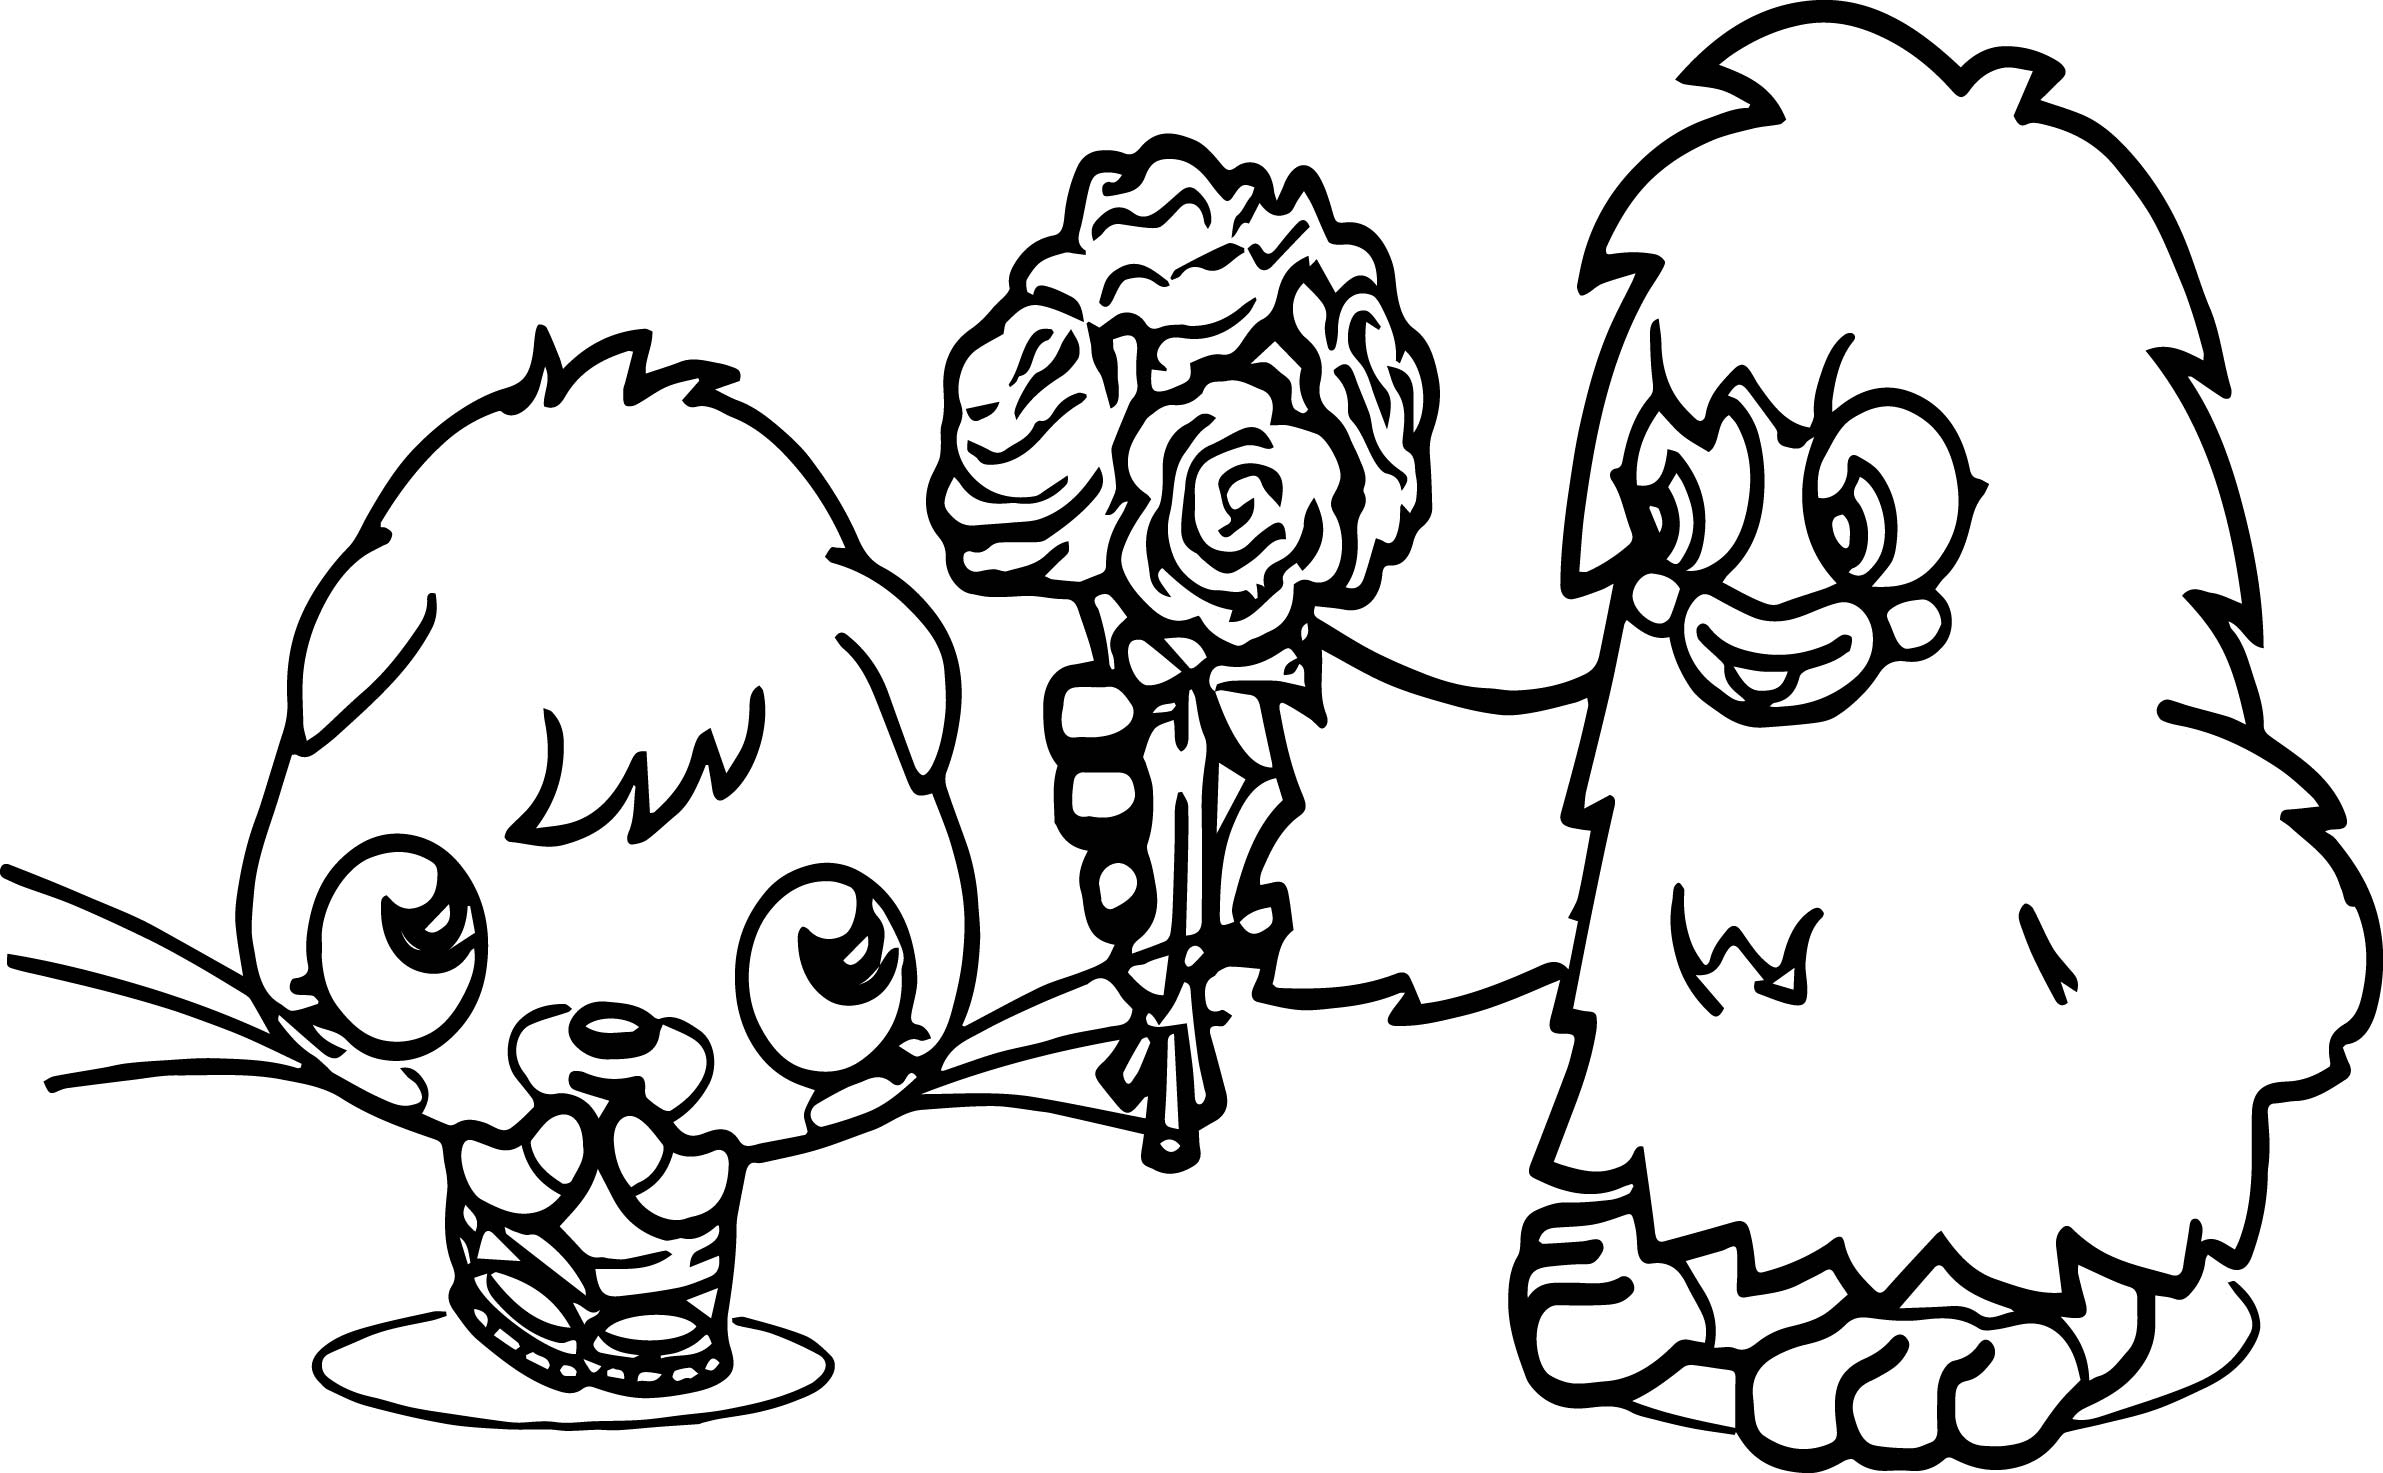 poppet moshi monsters coloring pages - photo#19